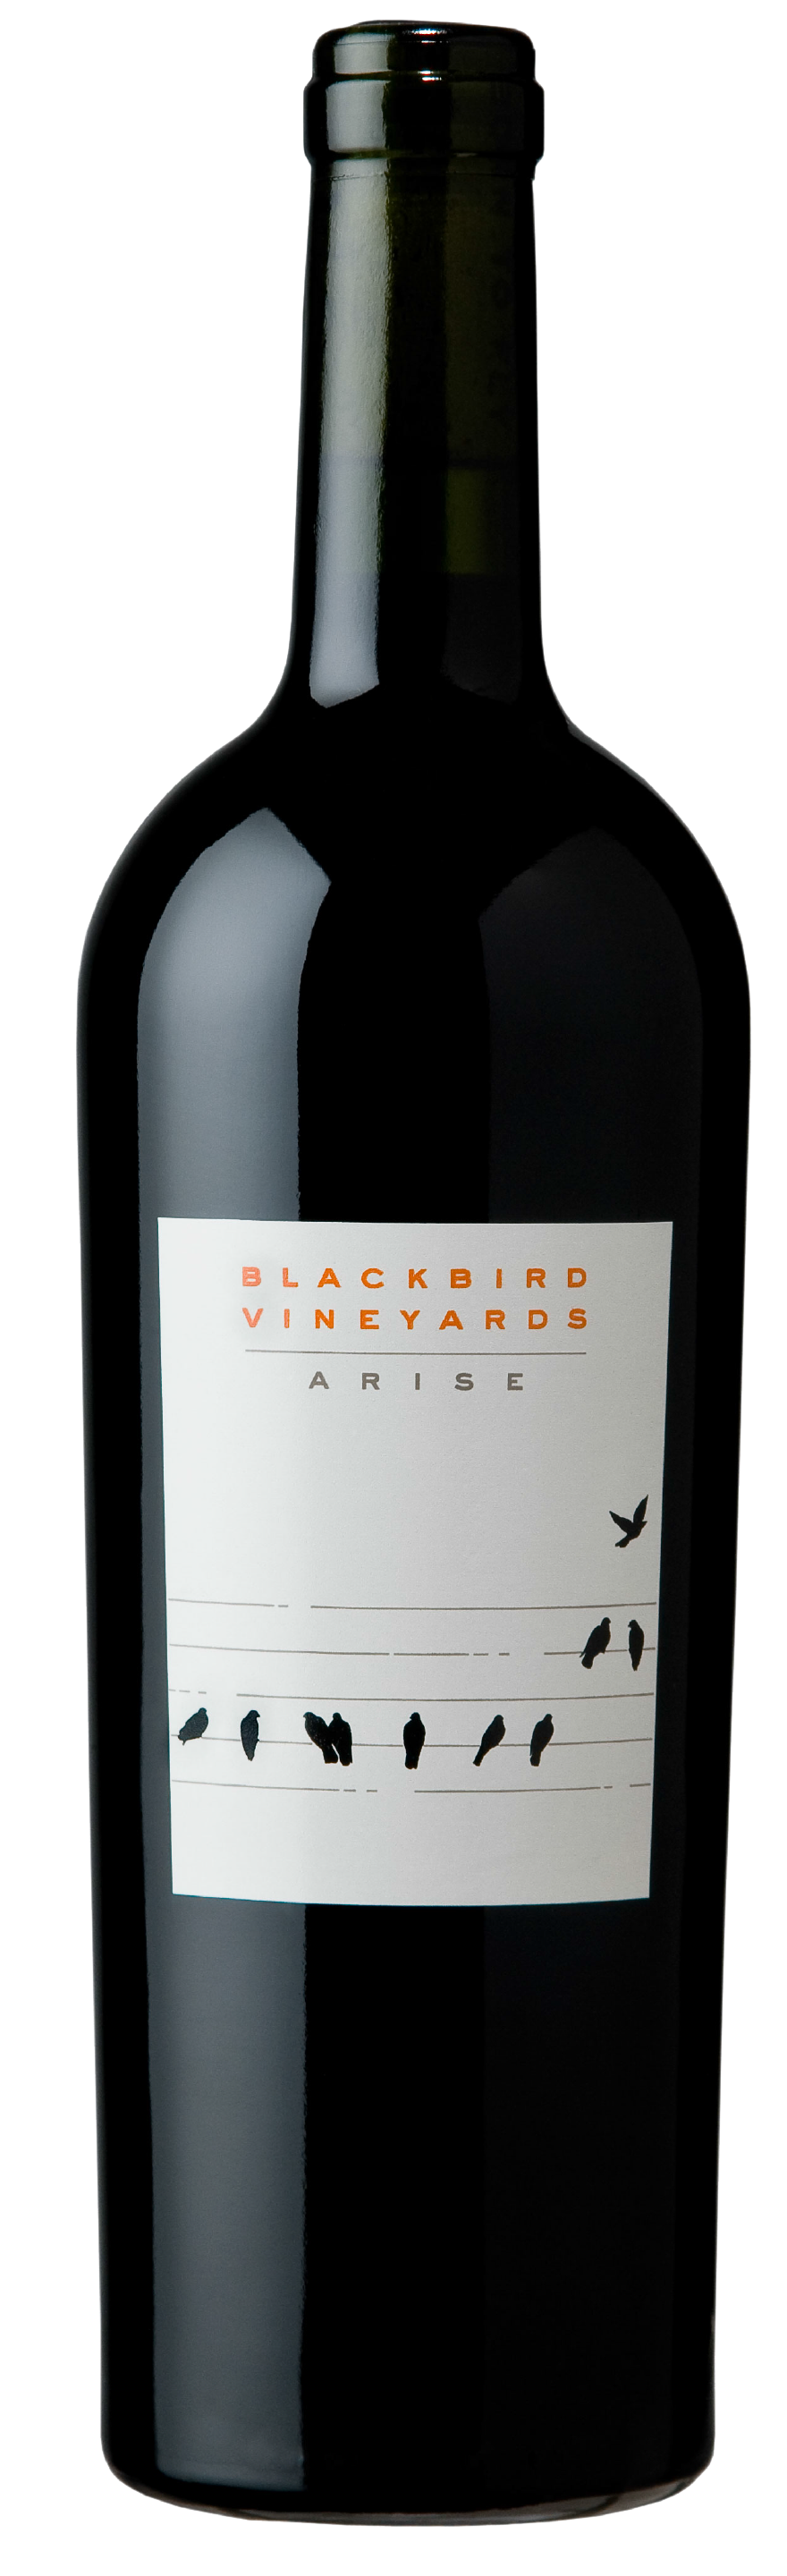 Blackbird Vineyards.png